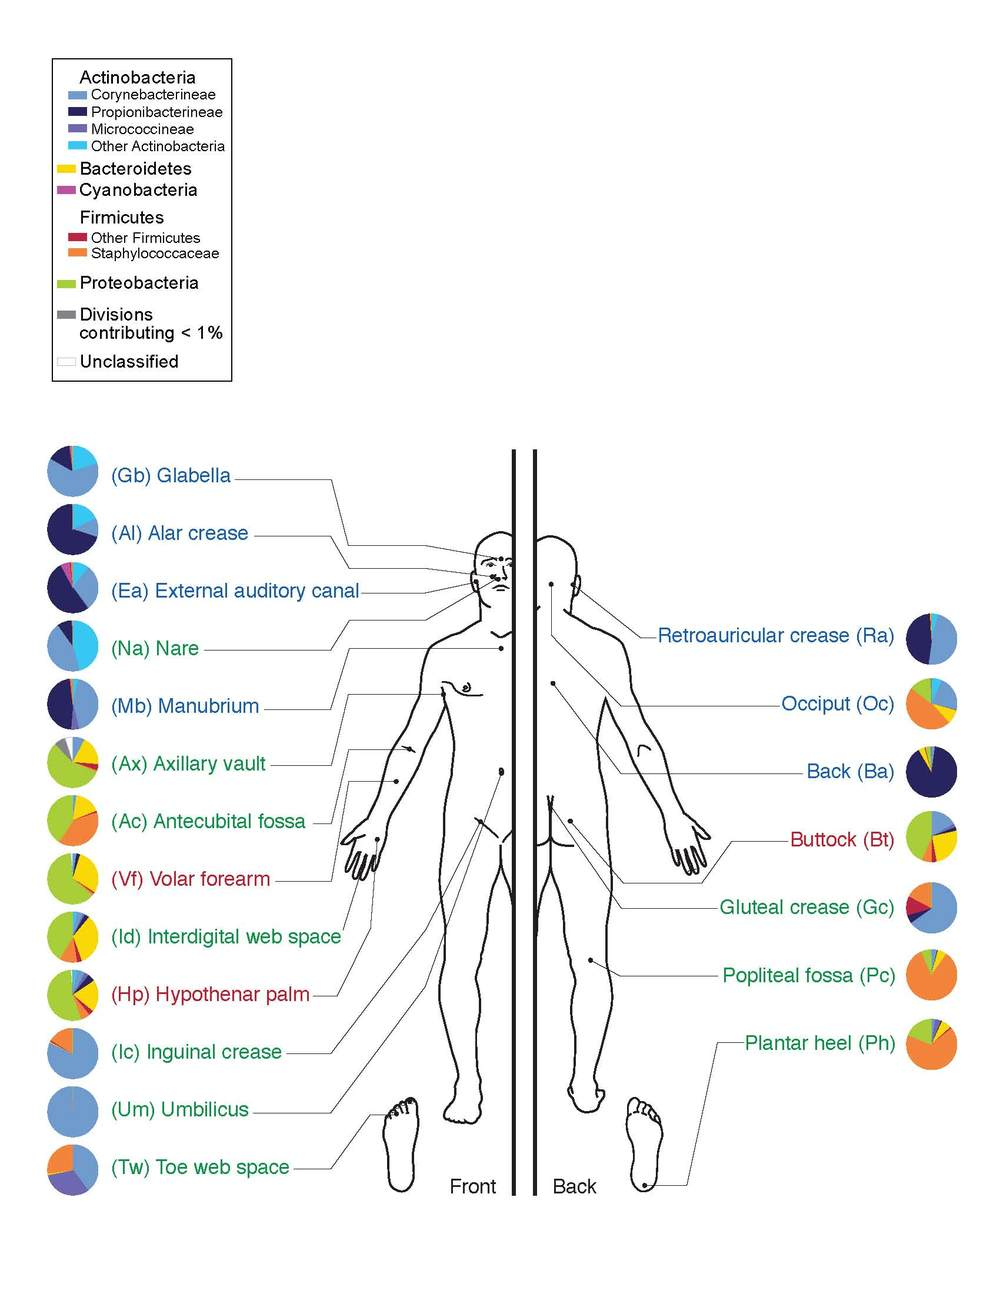 Humans have a multitude of different microbes living on and in us